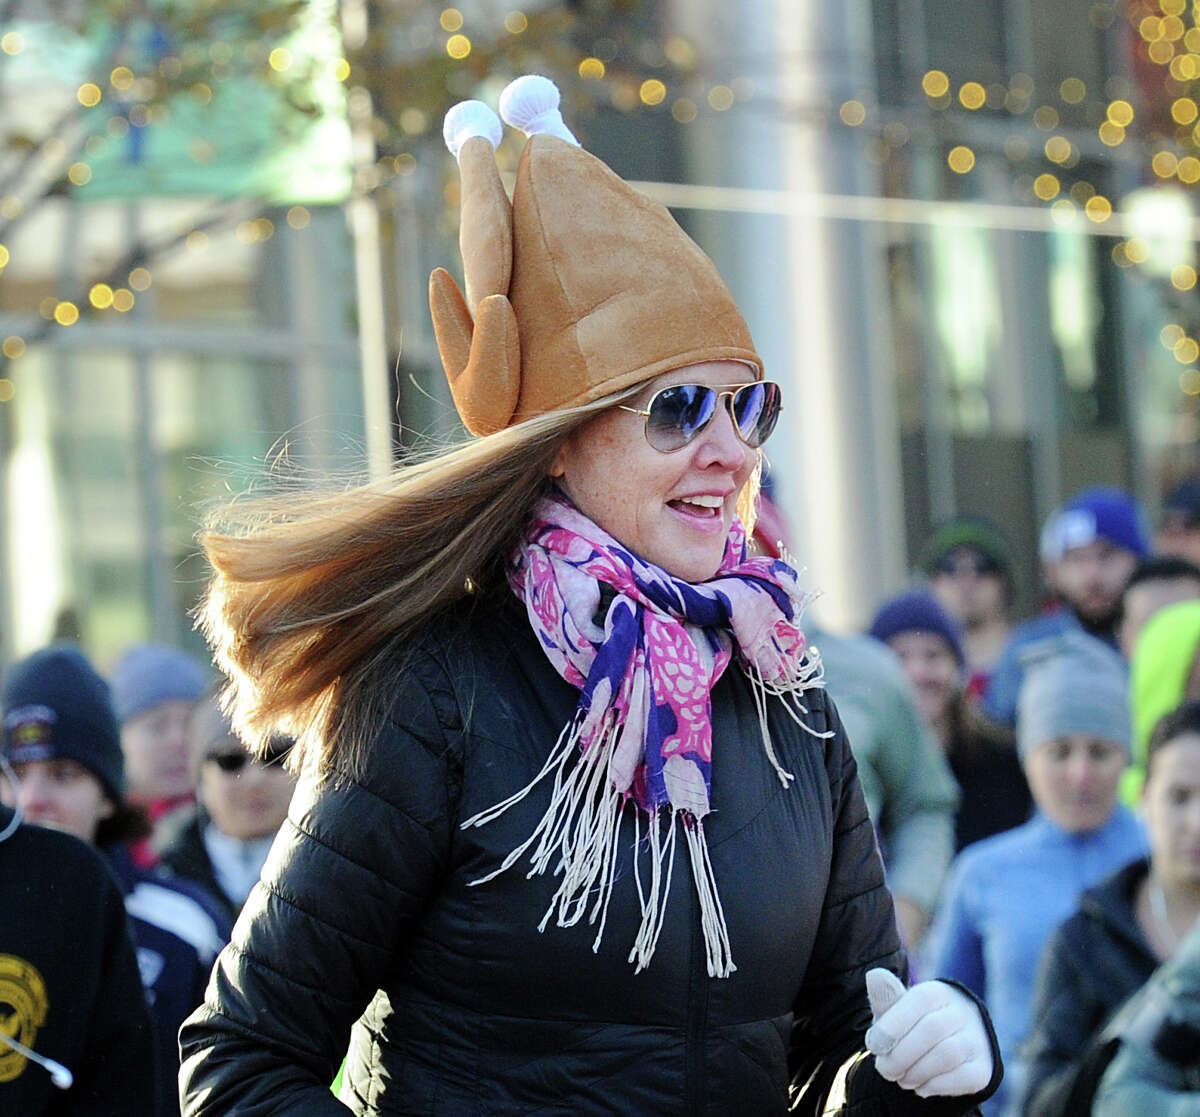 Margaret Vorder Bruegge of Stamford wore a turkey hat while participating in the seventh annual Harbor Point Turkey Trot 5K at Harbor Point in Stamford, Conn., Thursday, Nov. 23, 2017. Yancey Lawrence of Stamford finished first in the race beating Sean McCarthy who finished second.